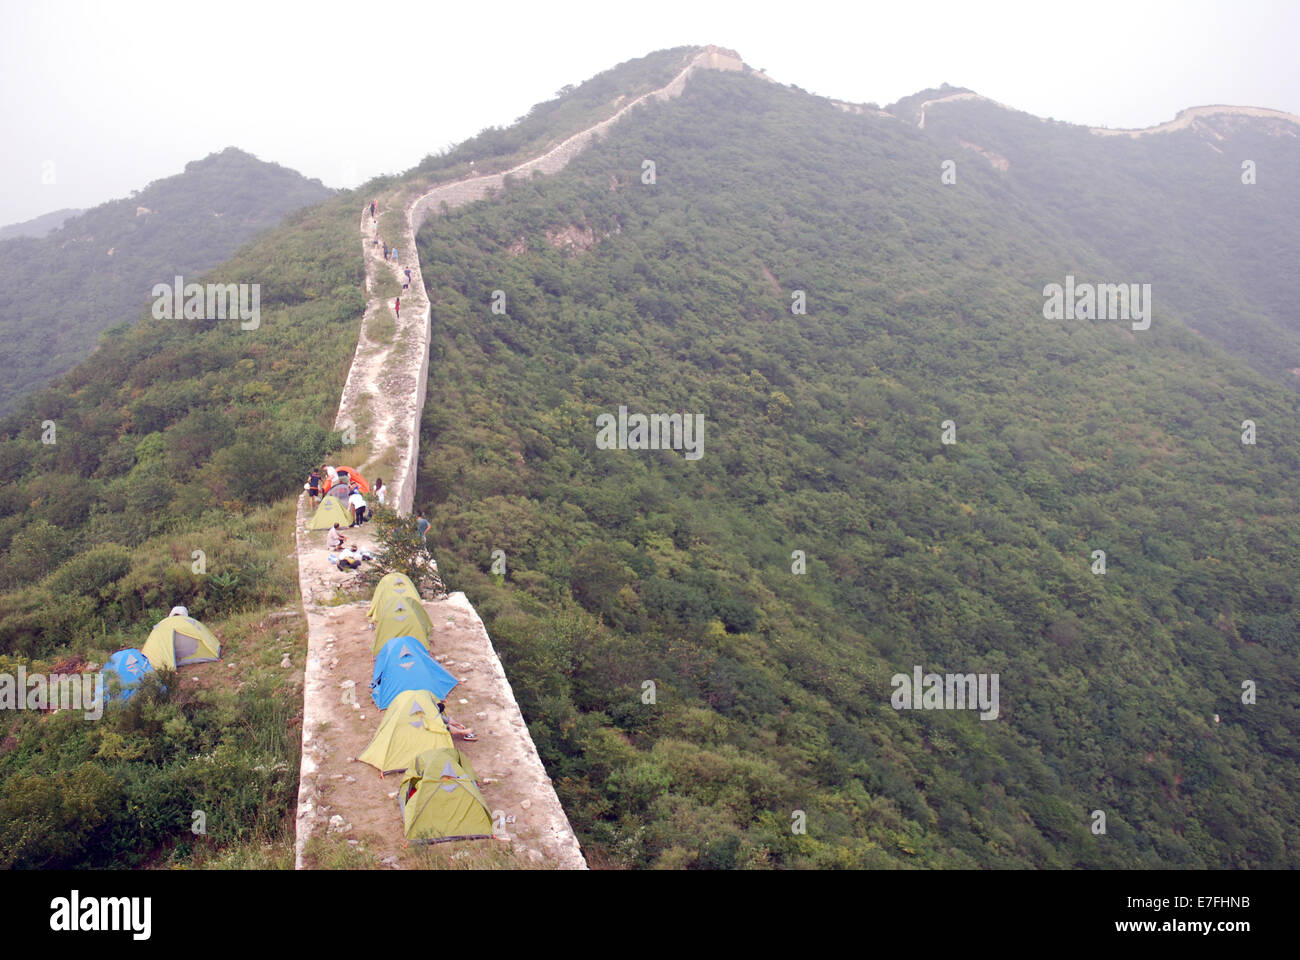 Western students camping on a remote part of the Great Wall, China 2014 - Stock Image